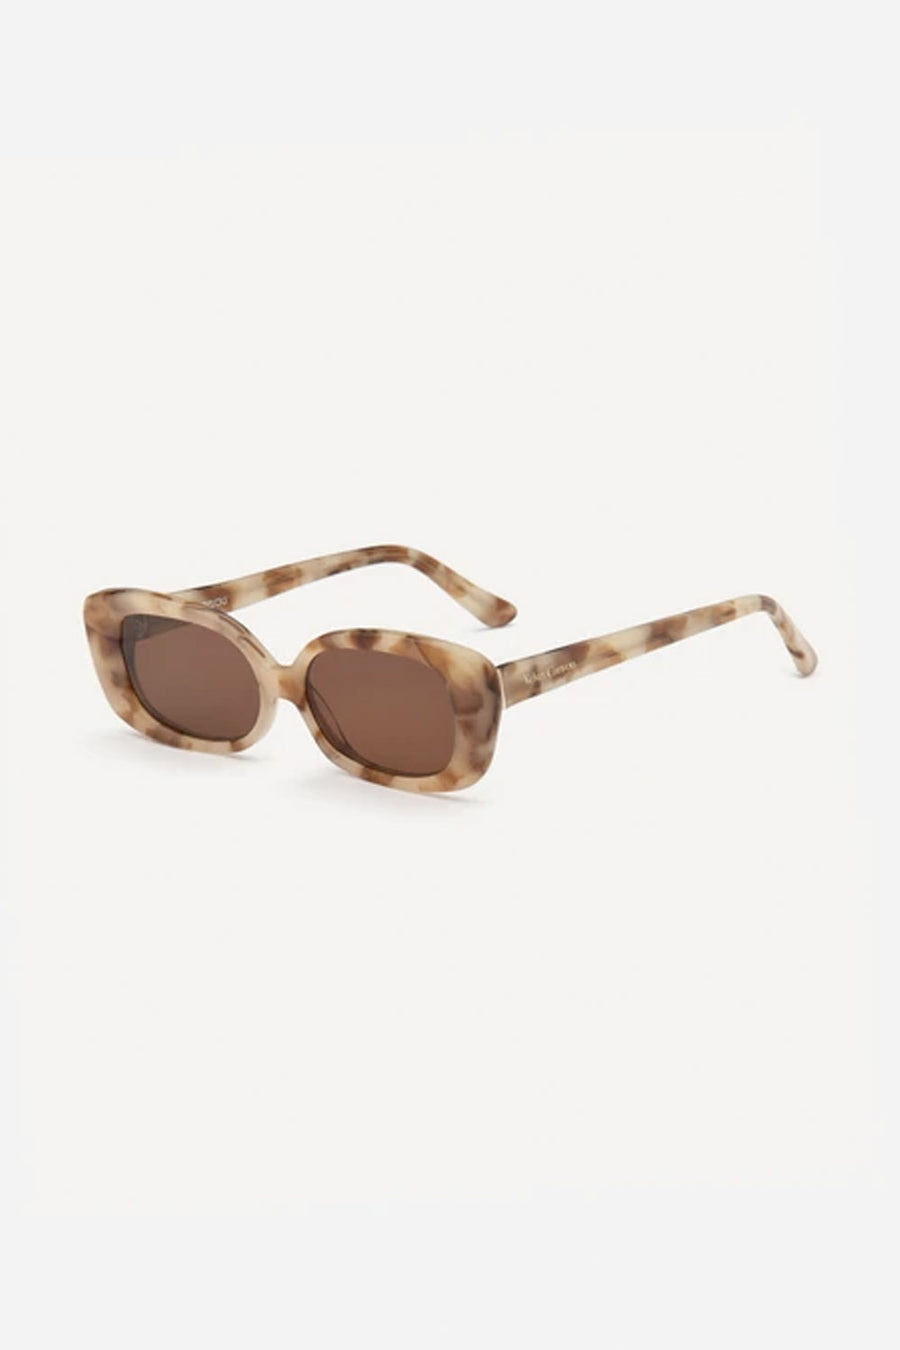 Zou Bisou | Caramel Tort | Eyewear NZ | VELVET CANYON NZ | Black Box Boutique Auckland | Womens Fashion NZ